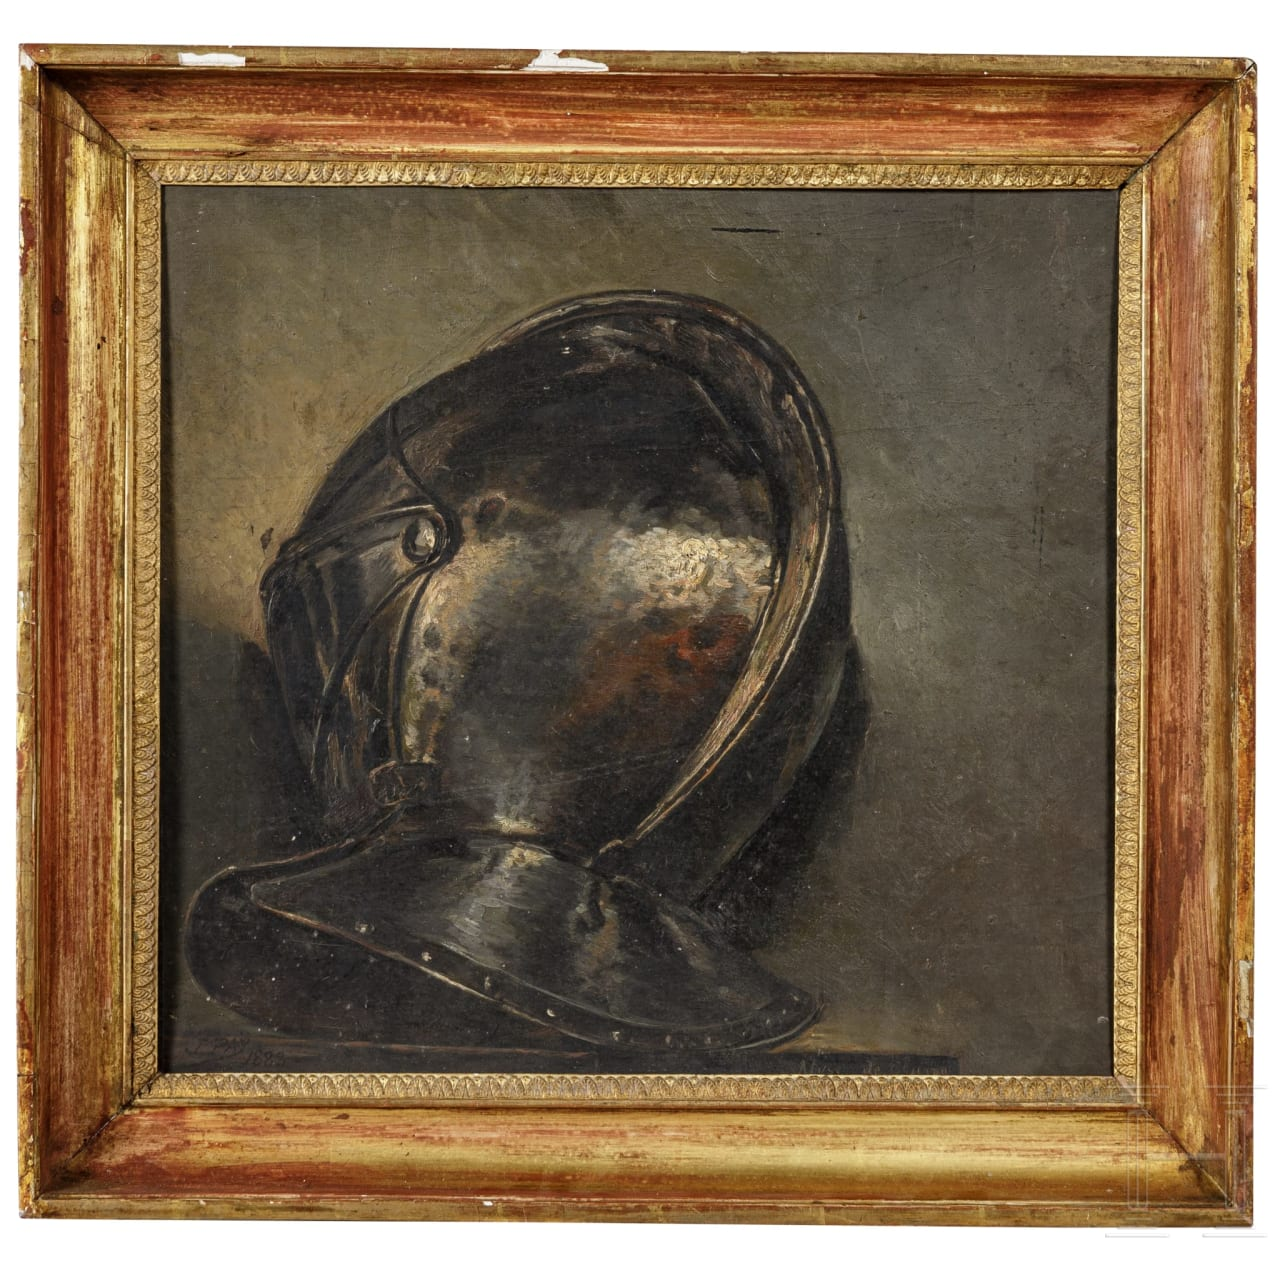 A painting of a coat helmet, signed J. PAY and dated 1883